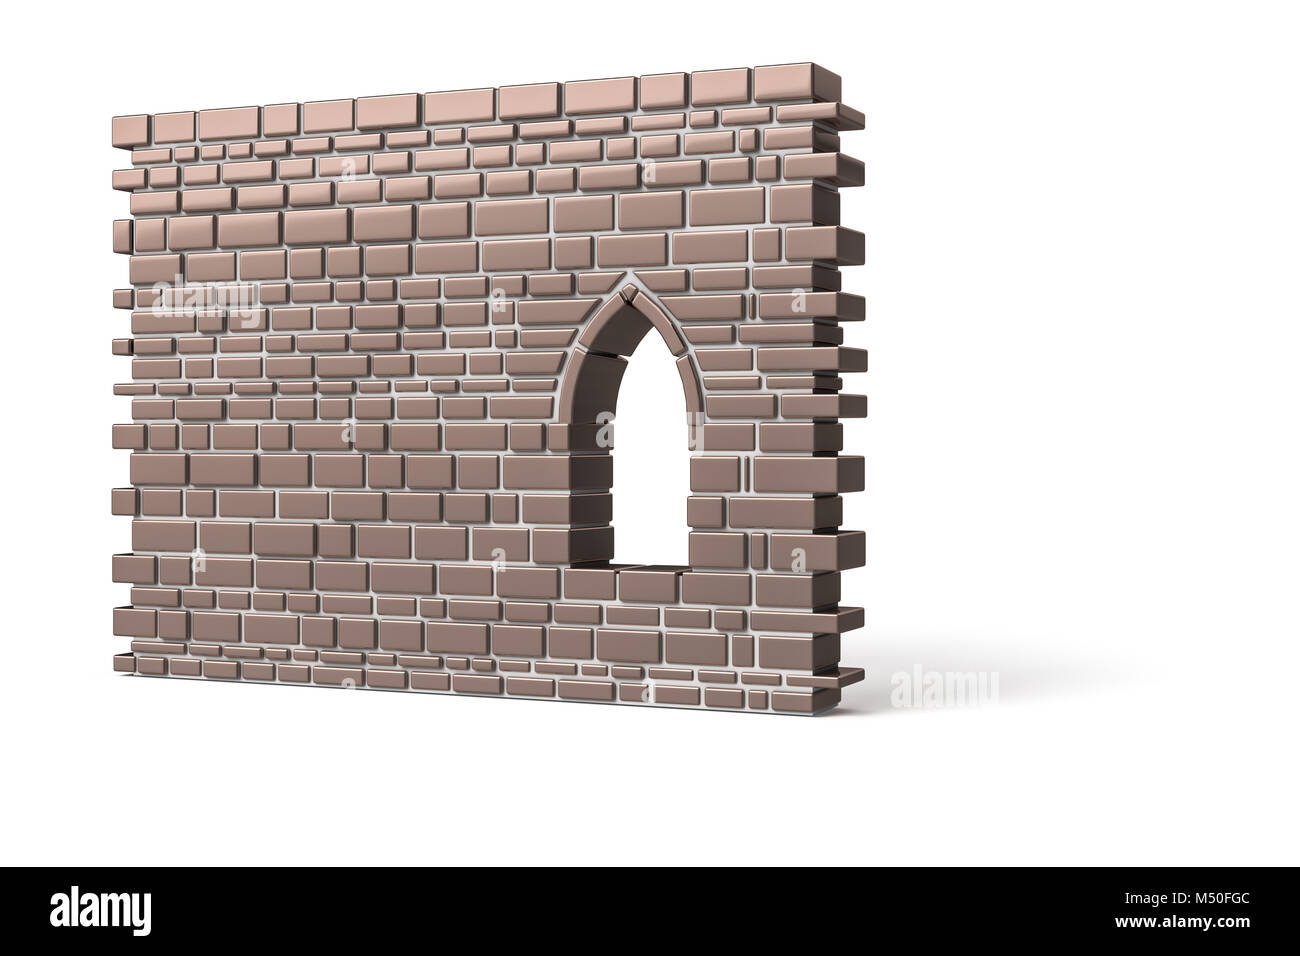 a part of a wall - Stock Image